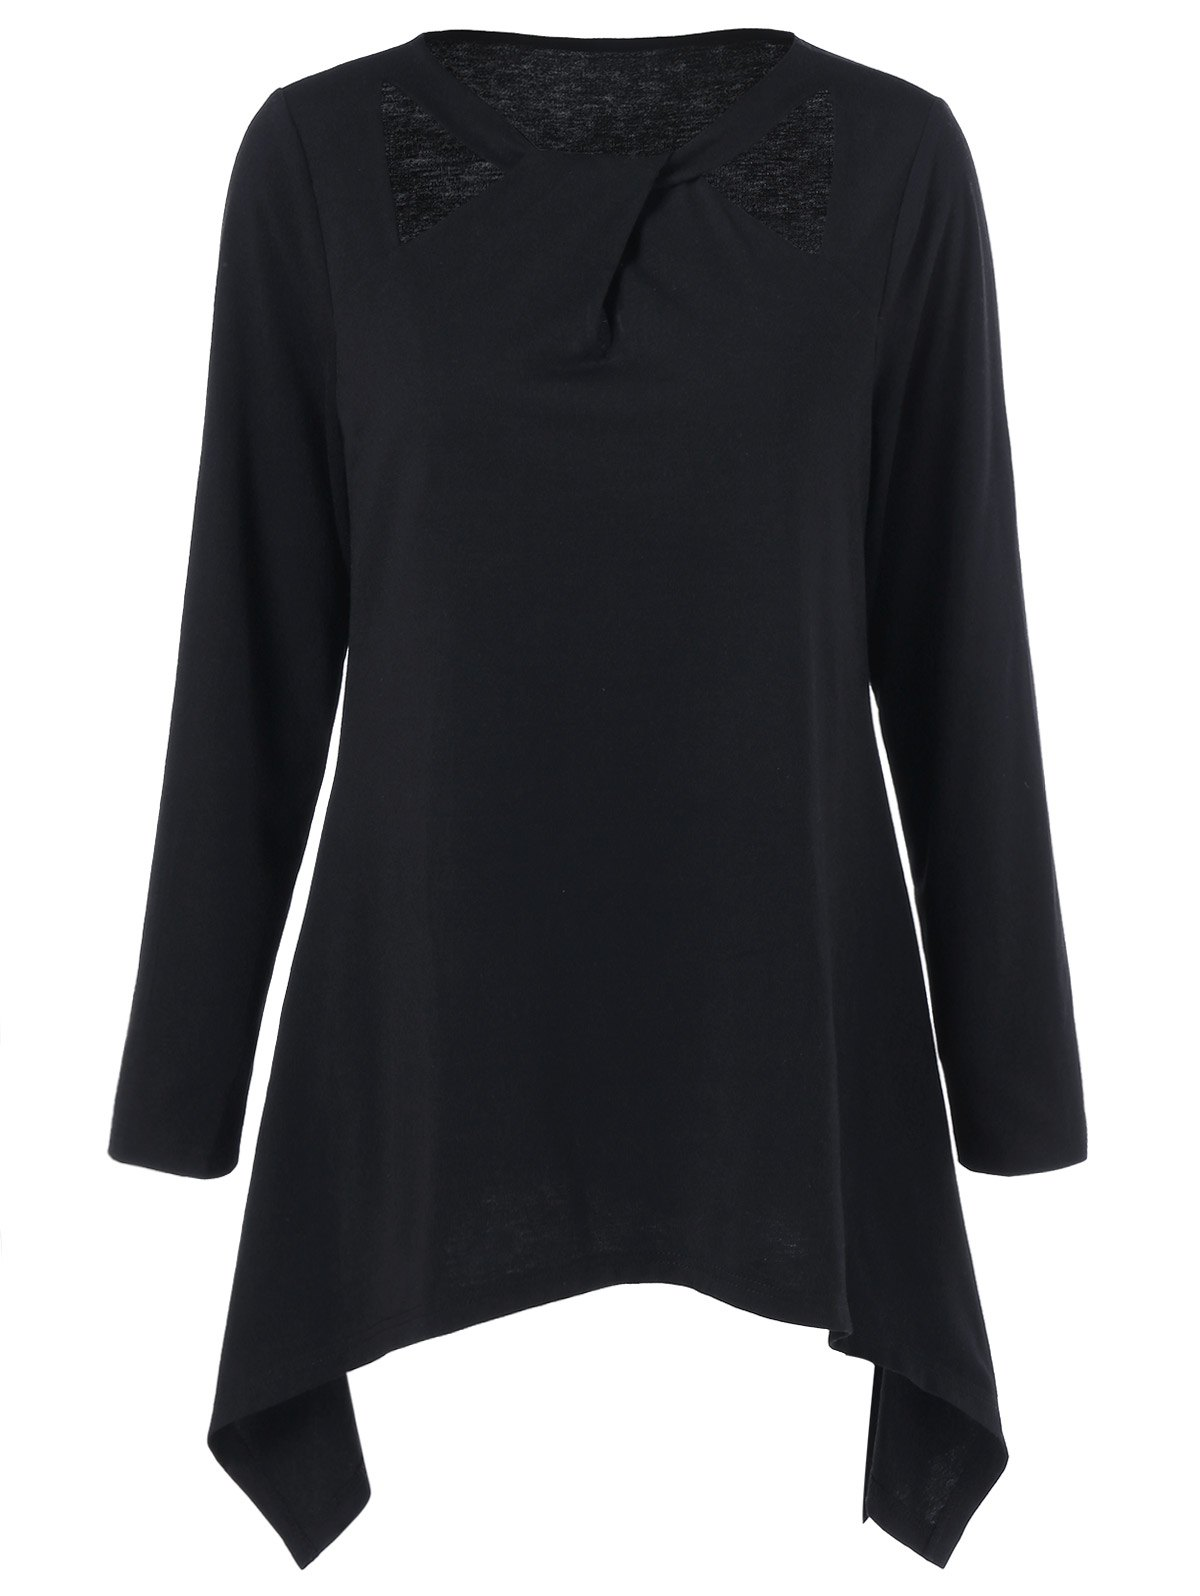 Cut Out Asymmetrical Plus Size TeeWOMEN<br><br>Size: 3XL; Color: BLACK; Material: Polyester; Shirt Length: Long; Sleeve Length: Full; Collar: Jewel Neck; Style: Streetwear; Season: Fall,Spring; Pattern Type: Solid; Weight: 0.370kg; Package Contents: 1 x Tee;